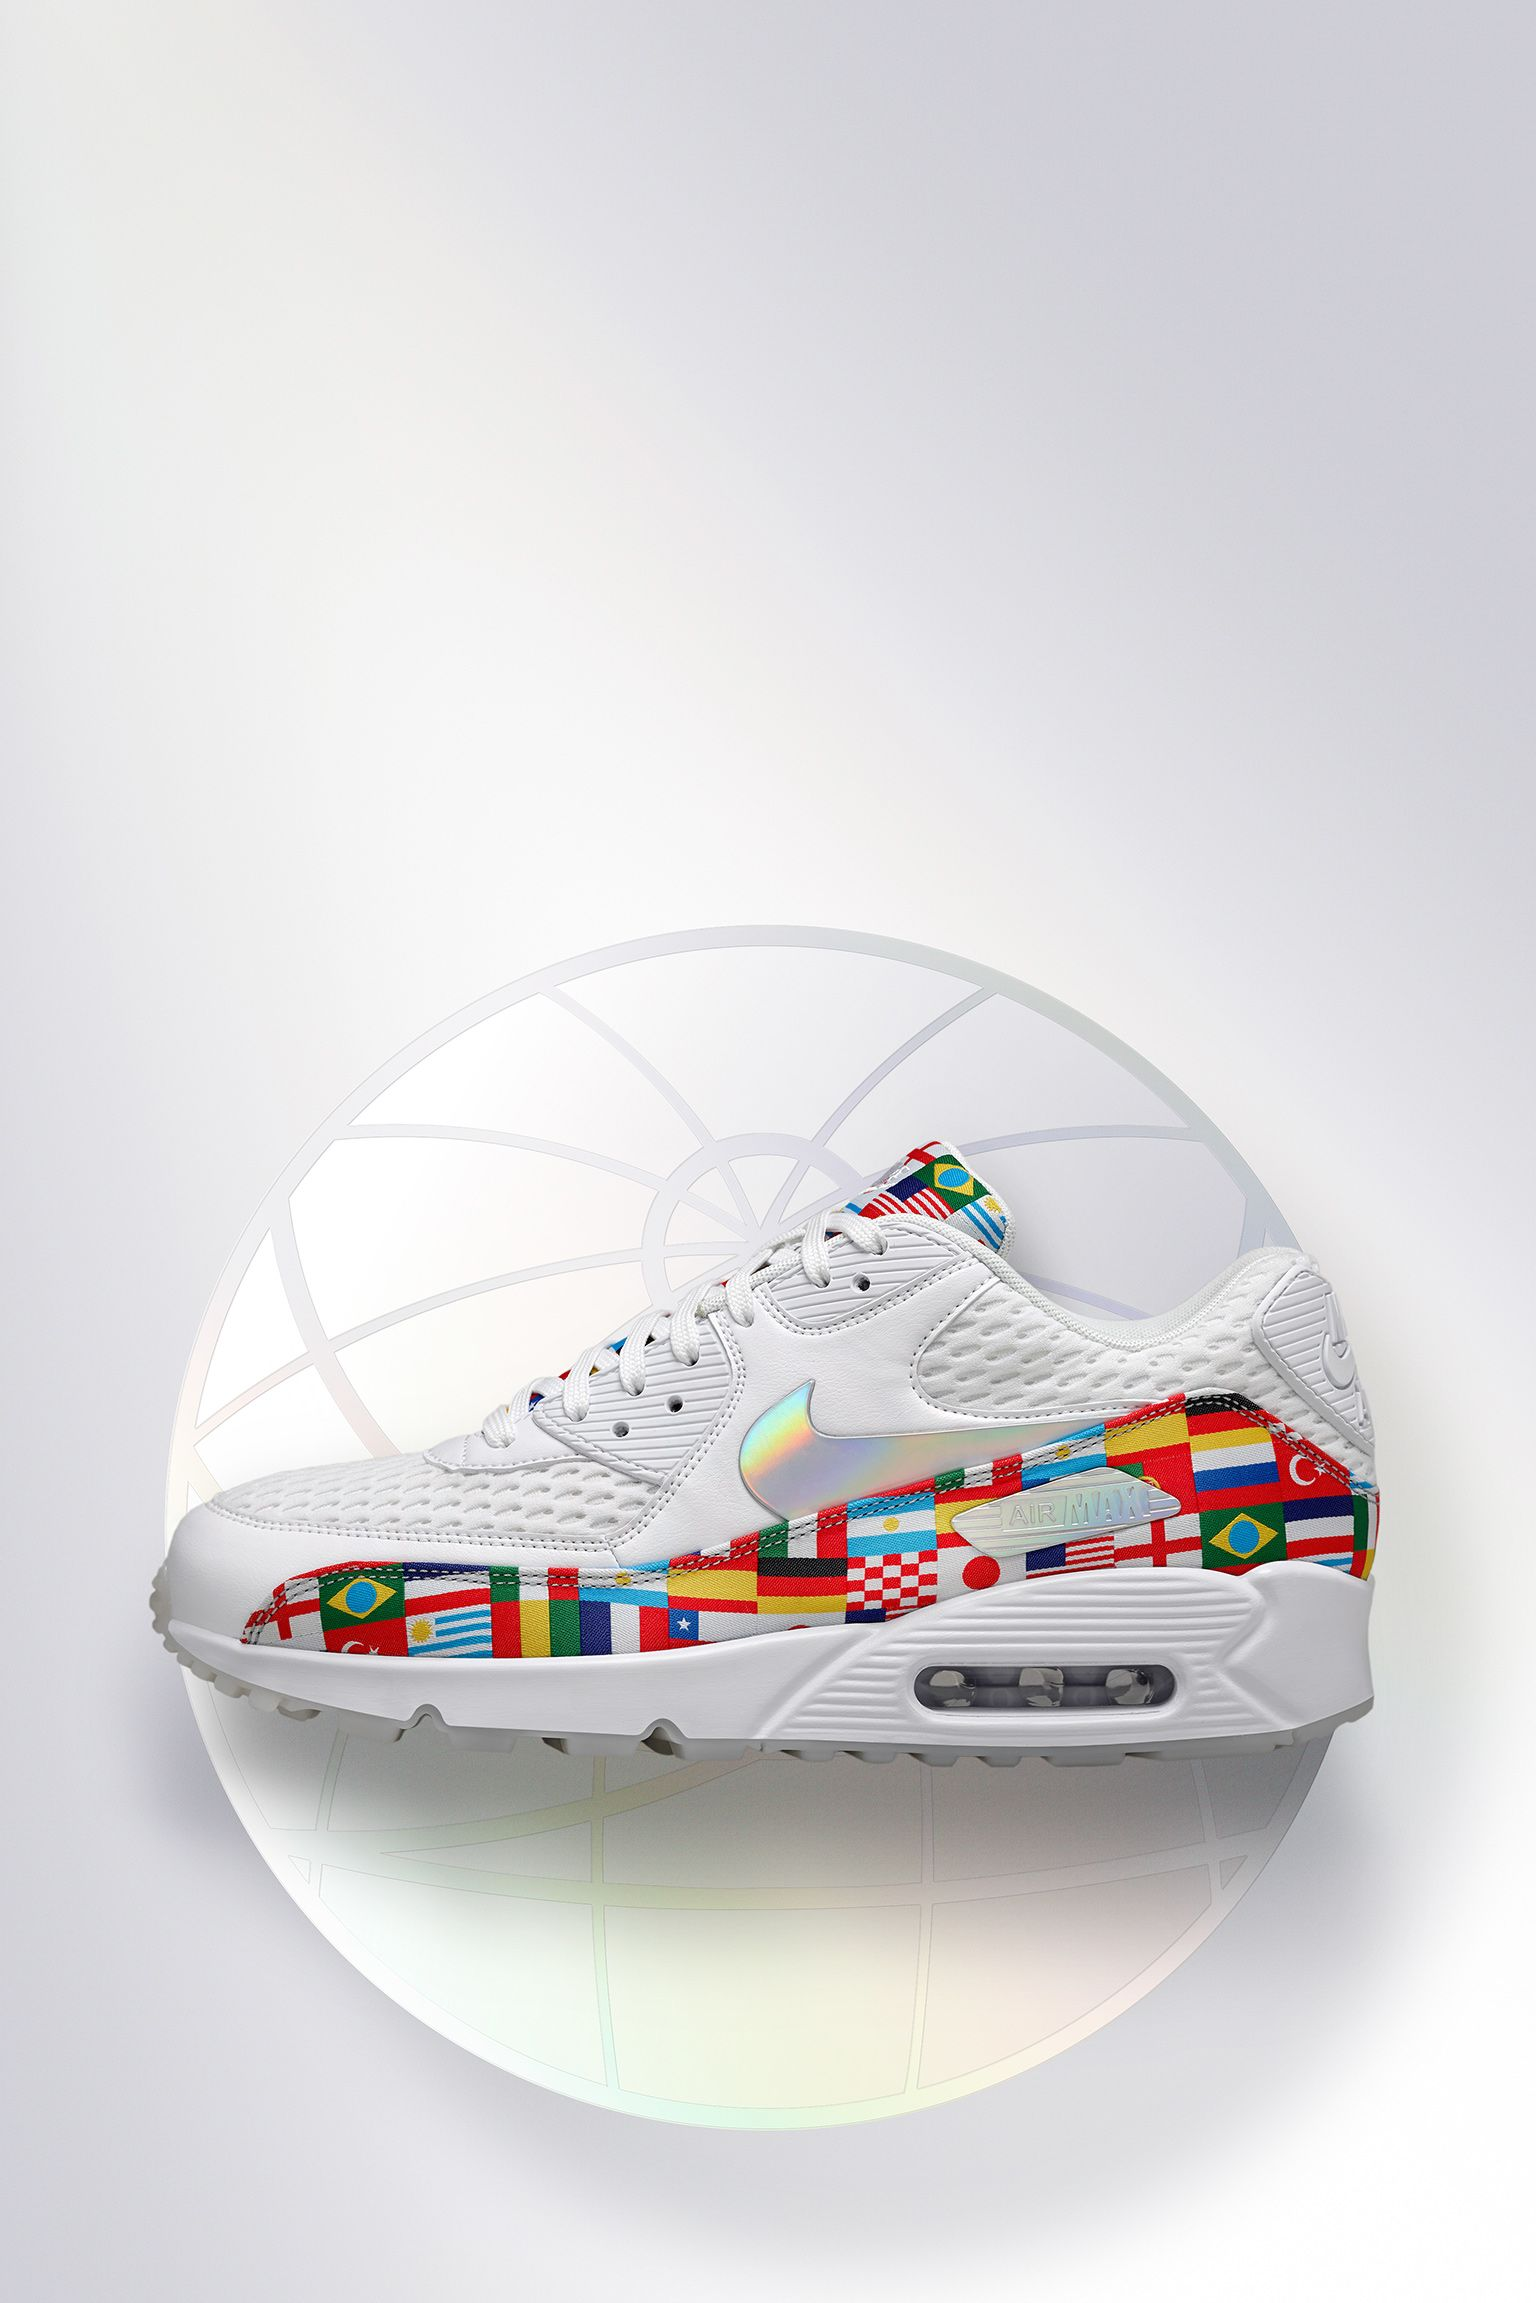 Nike Air Max 90 'White & Multicolor' Release Date. Nike+ SNKRS